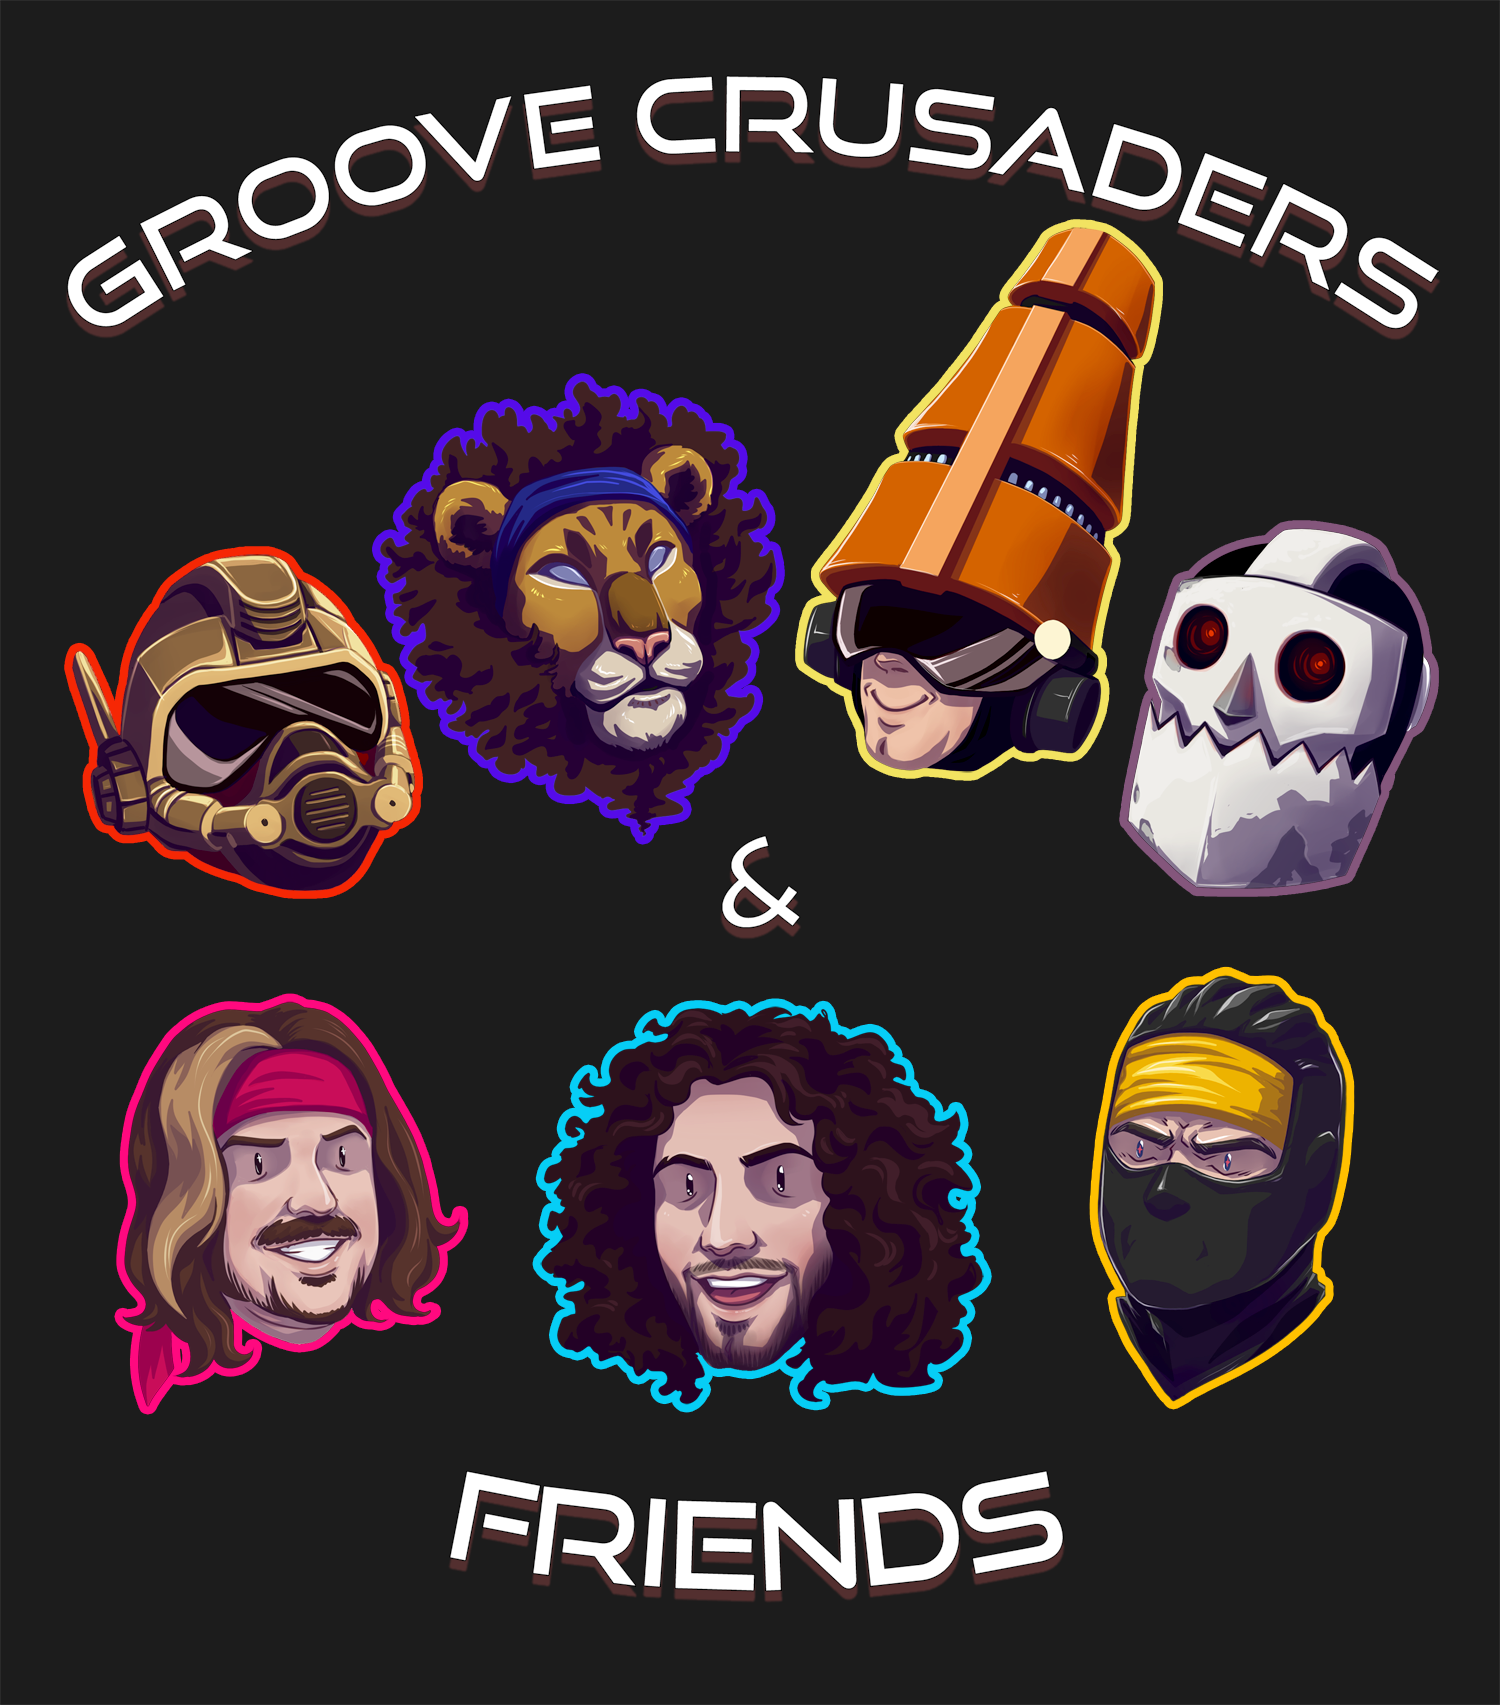 Groove Crusaders & Friends - TWRP & Starbomb